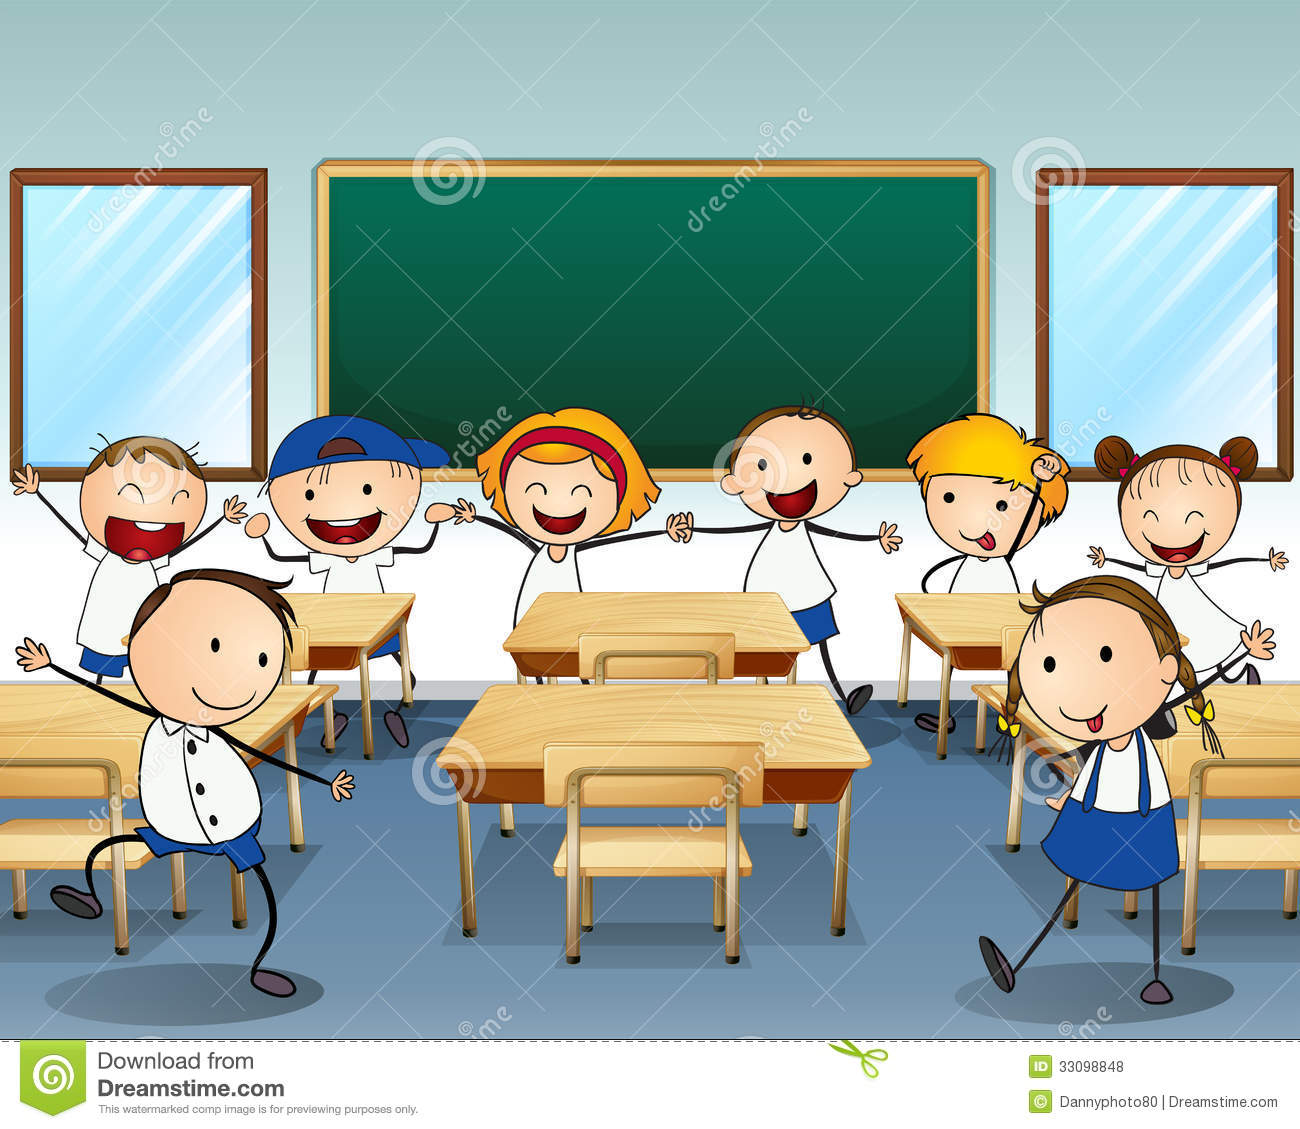 education clip art free downloads – Clipart Free Download black and white download